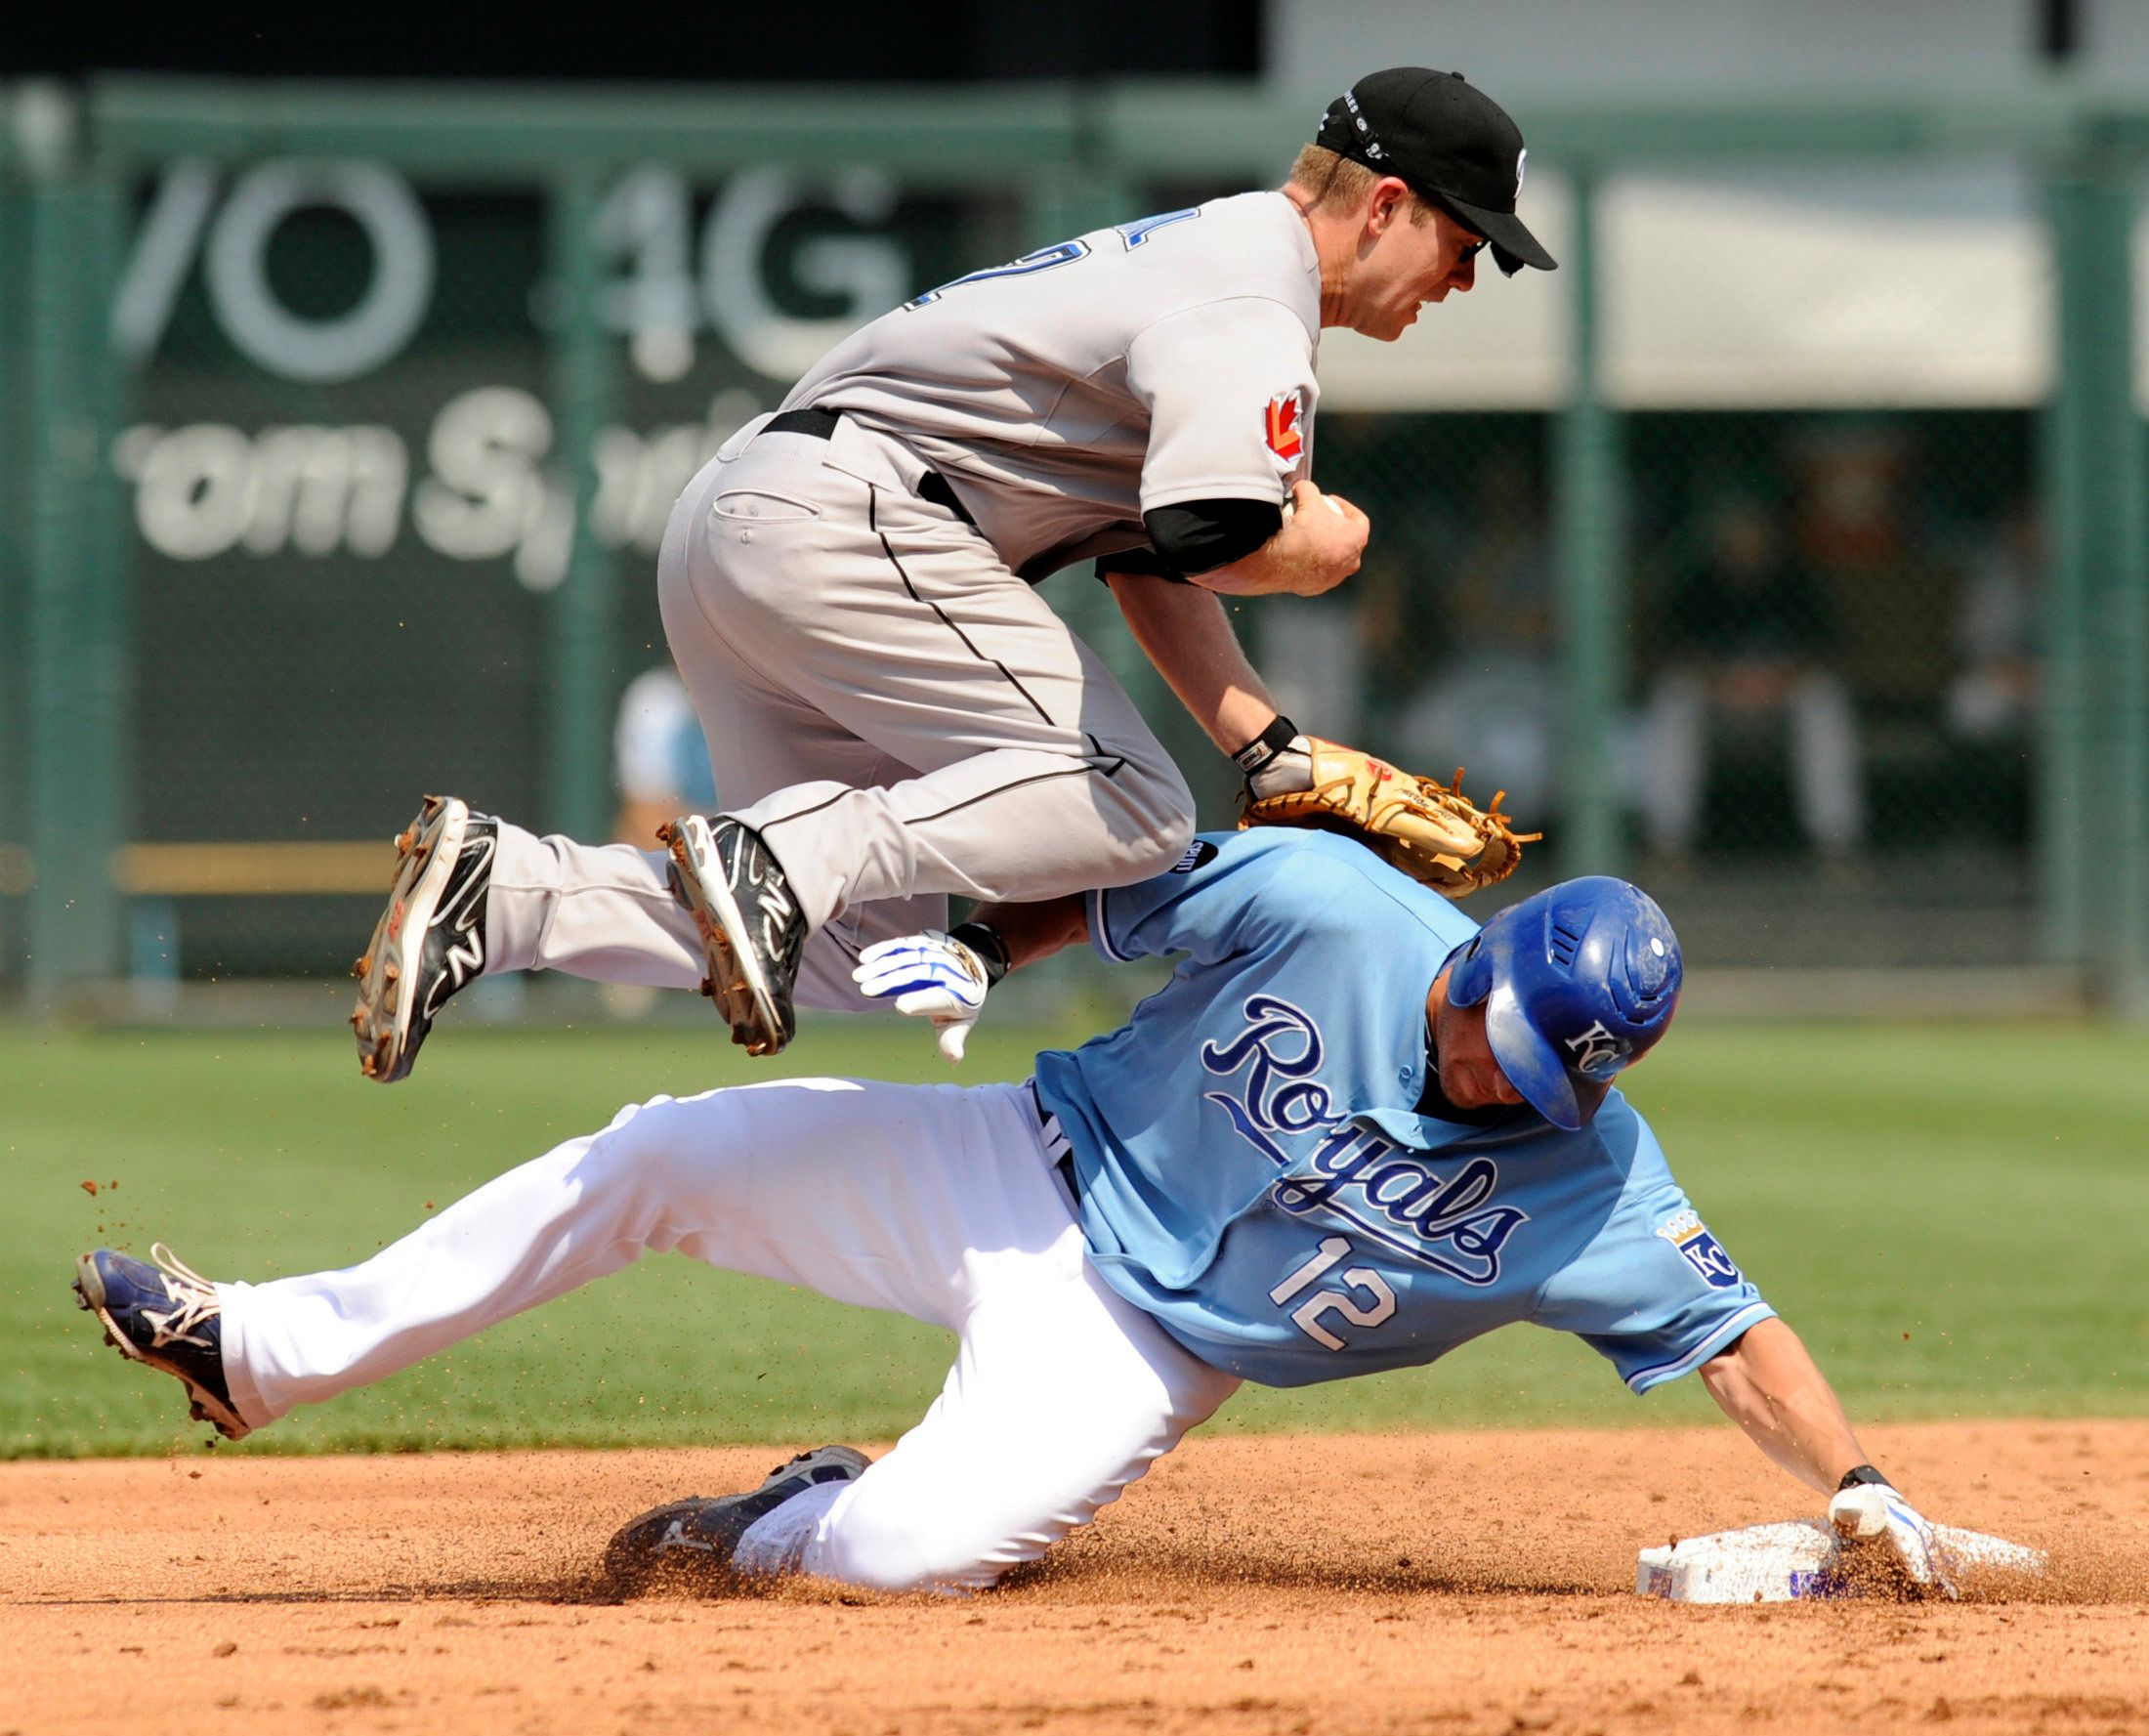 Toronto Blue Jays second baseman Aaron Hill hurdles Kansas City Royals Mitch Maier after Meier broke up the double play in th